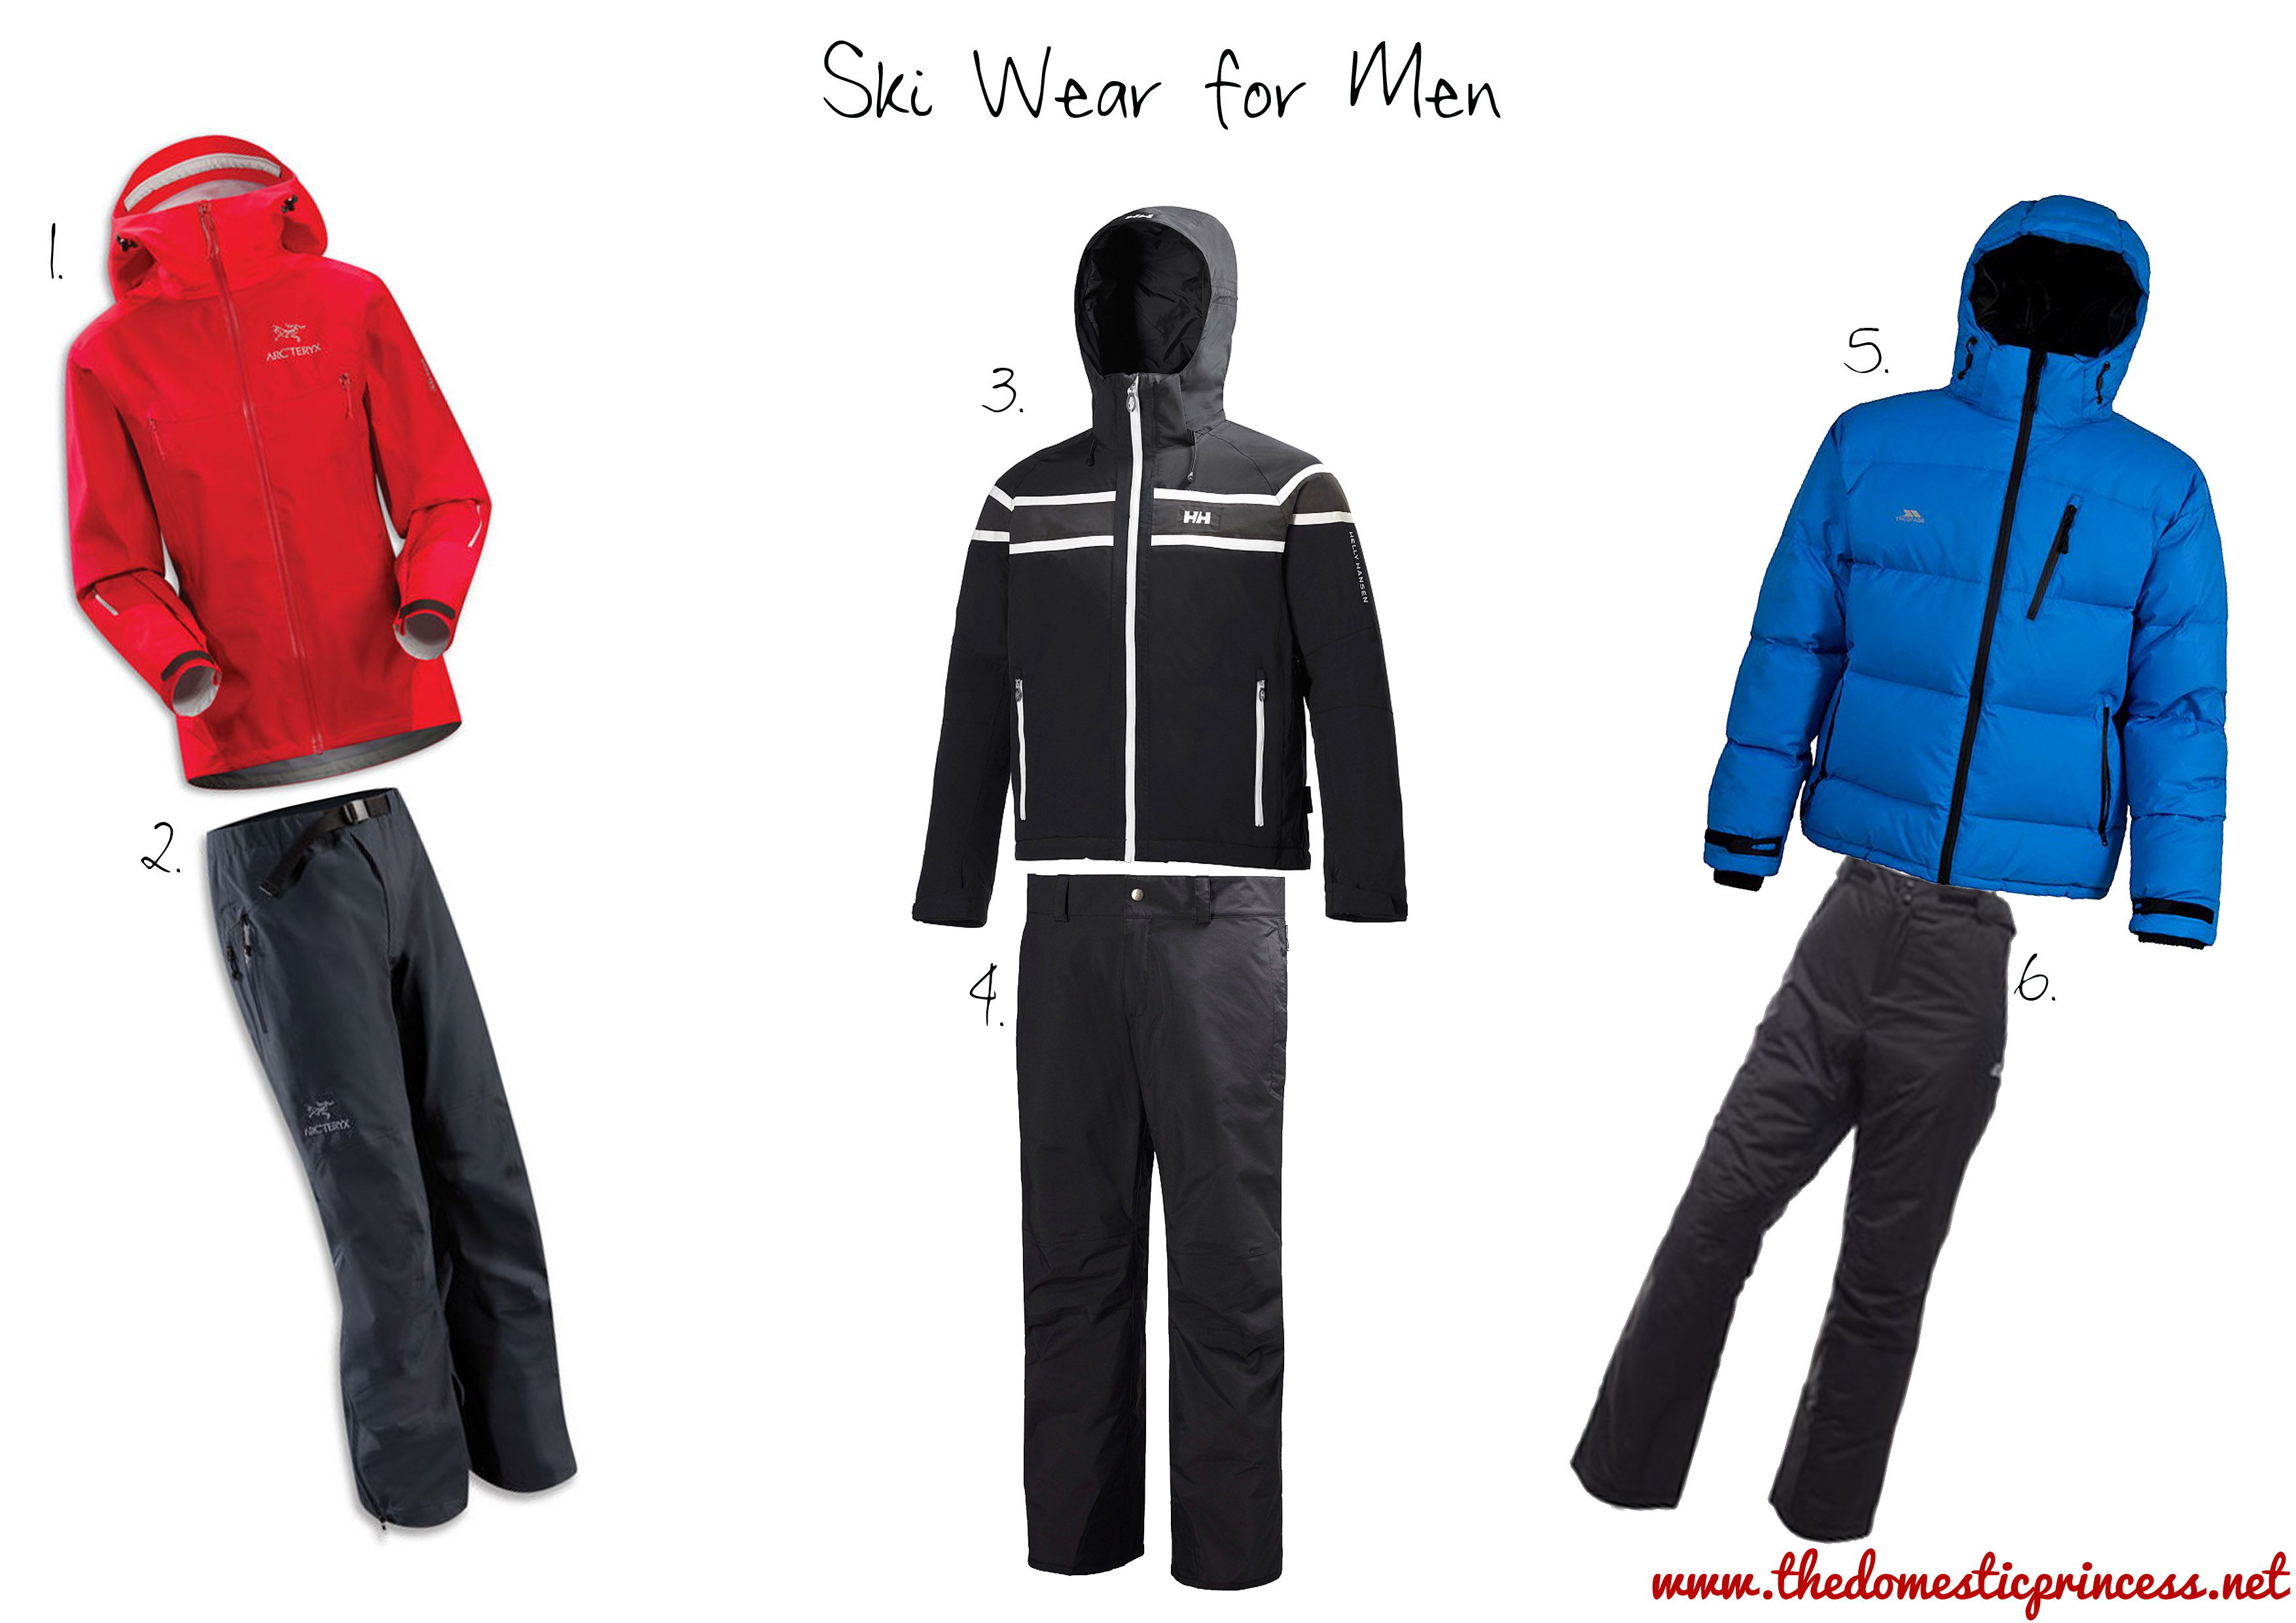 Choose plus size ski pants from Athleta that are figure-flattering and stylish must-haves. This winter she will look great in comfortable and fashionable designs that really make a statement with Athleta plus size ski .